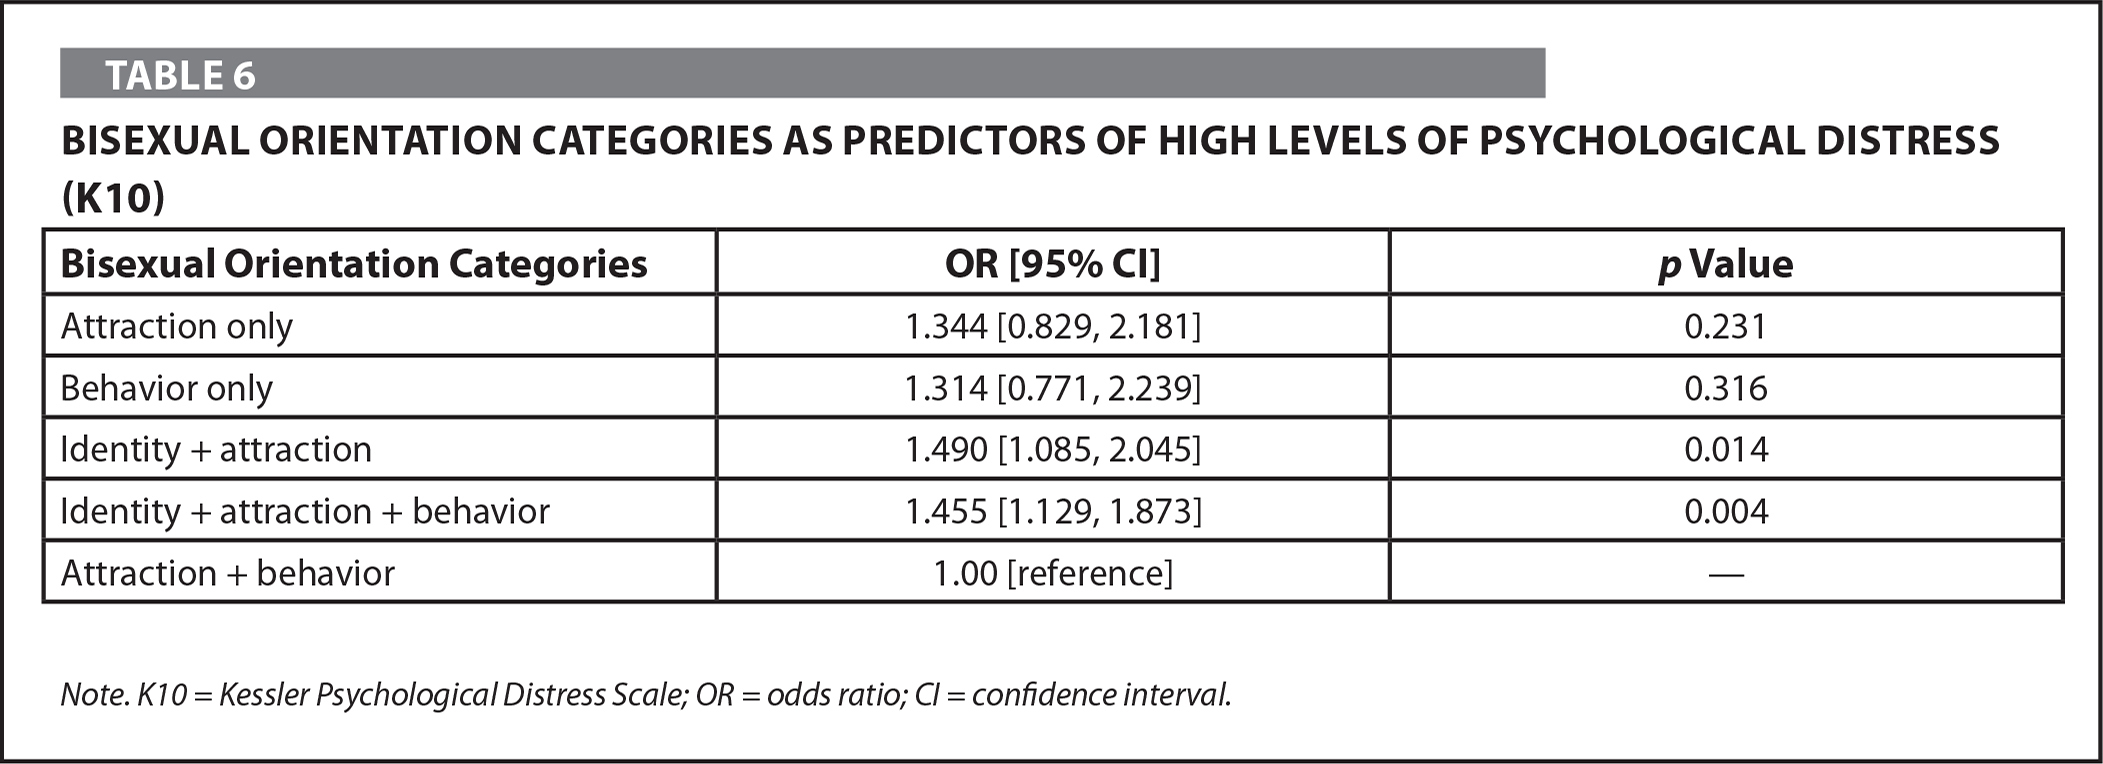 Bisexual Orientation Categories as Predictors of High Levels of Psychological Distress (K10)